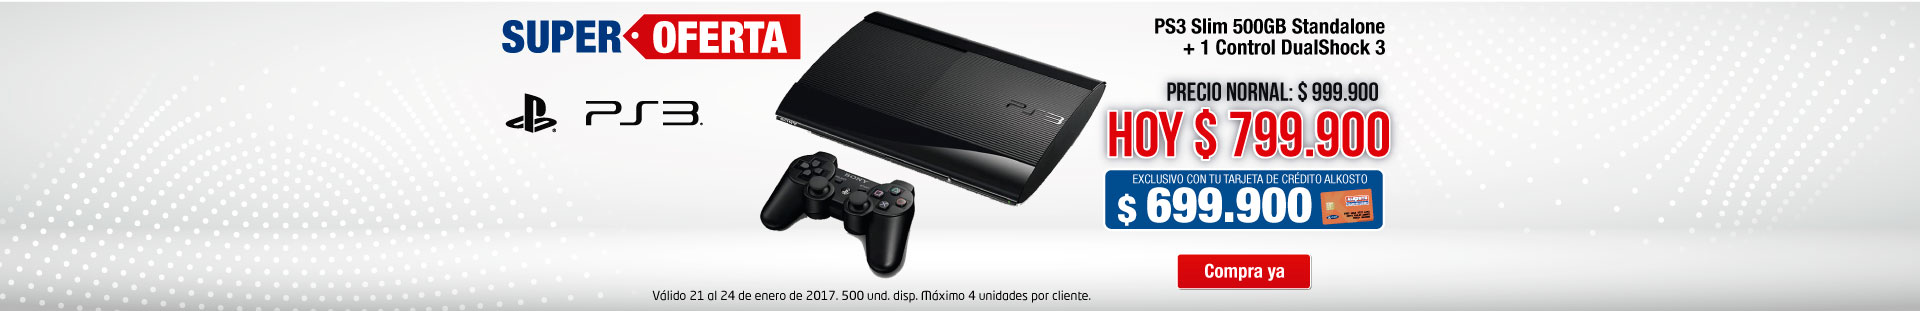 ps3 standalone